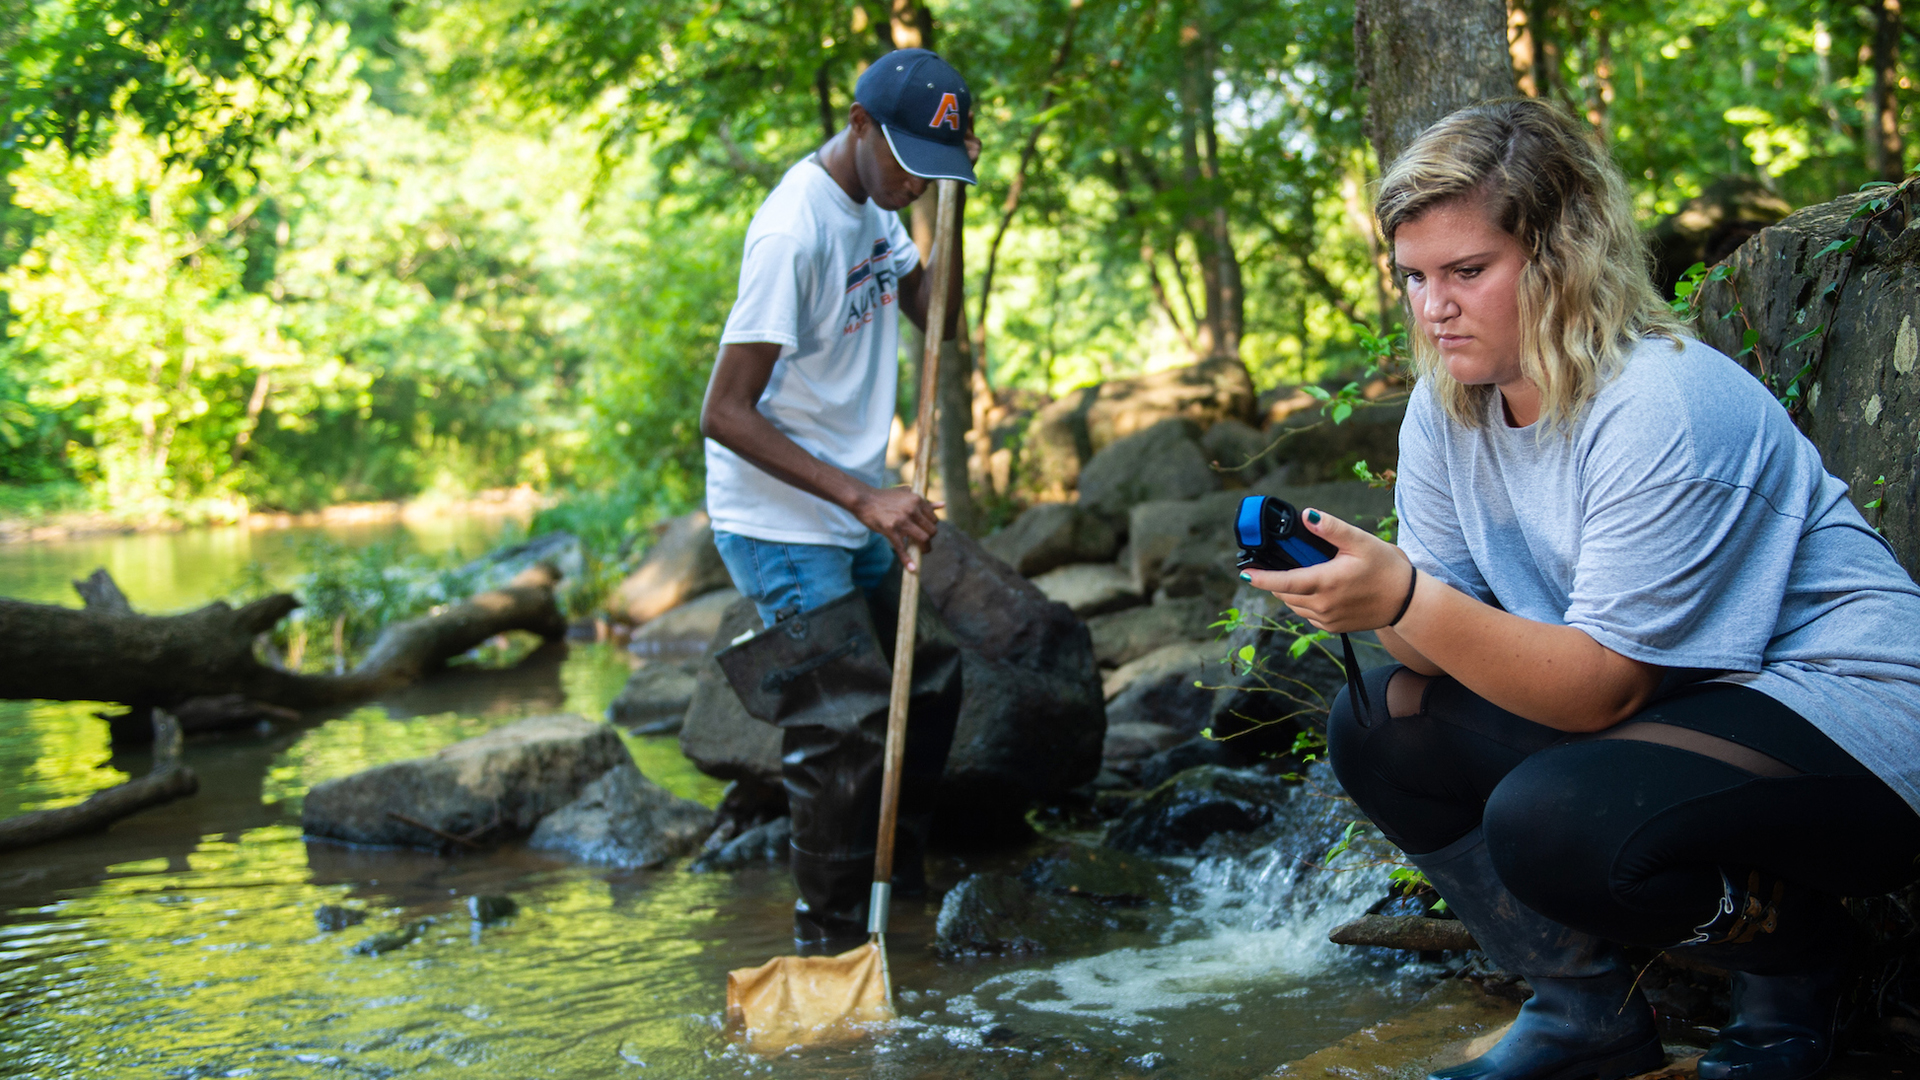 Auburn-Students-Water-Resource-Research-Testing-Stream-River-in-Forest-Woods